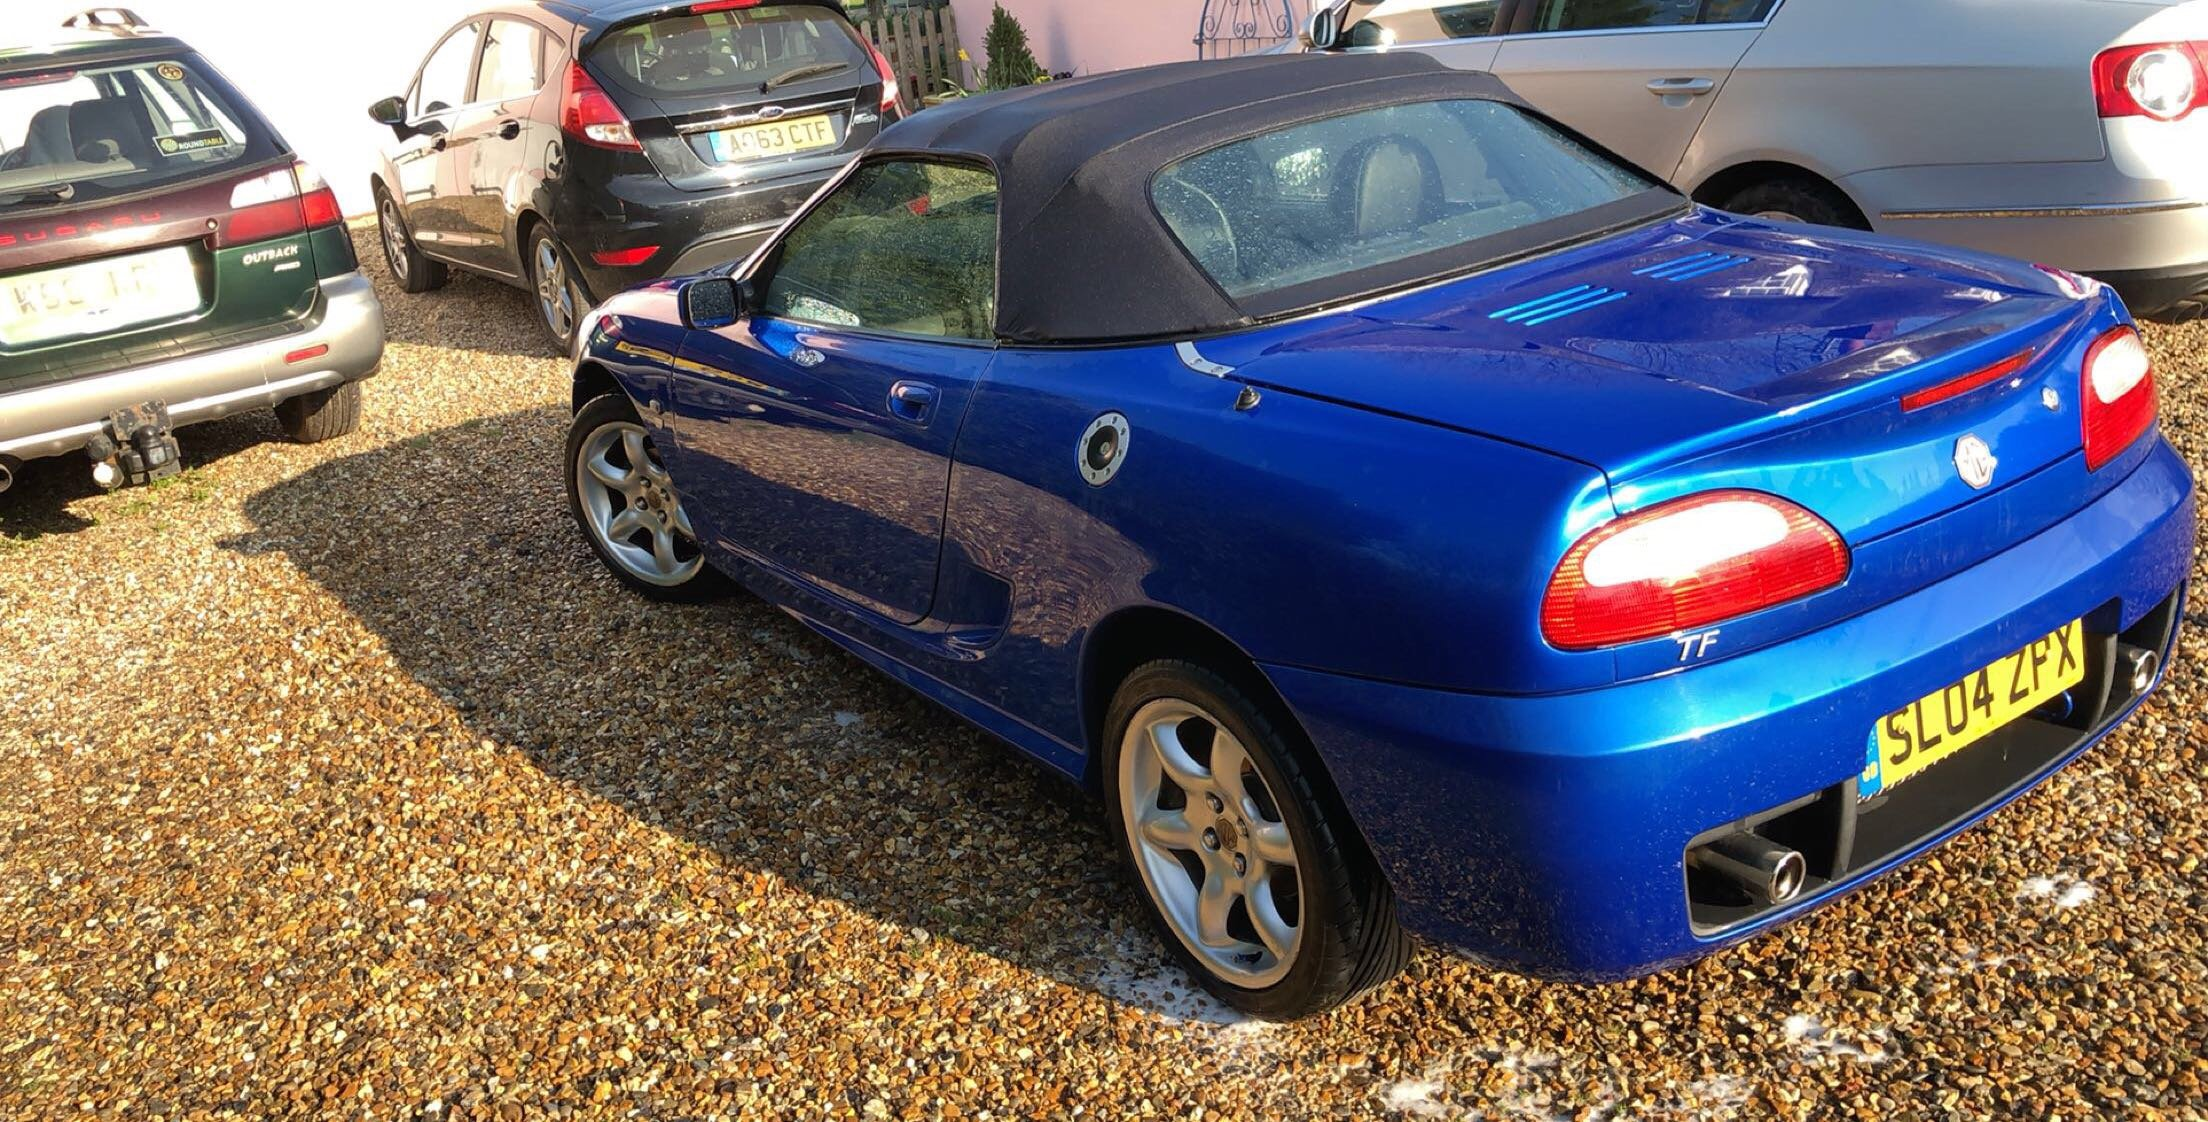 2004 MGTF for sale For Sale (picture 2 of 6)